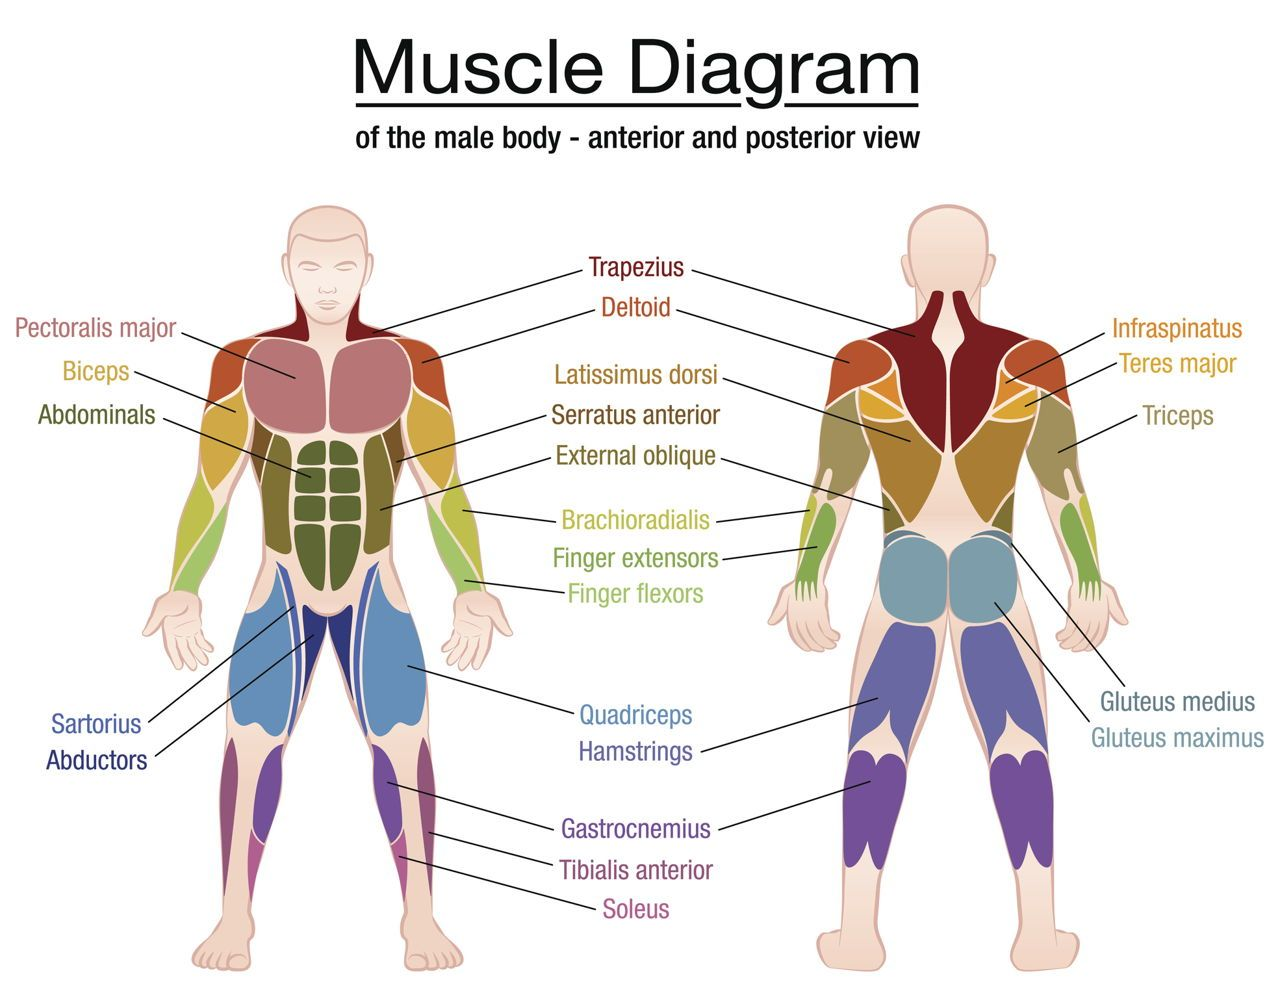 Muscle Contraction Steps (With images) | Muscle diagram ...